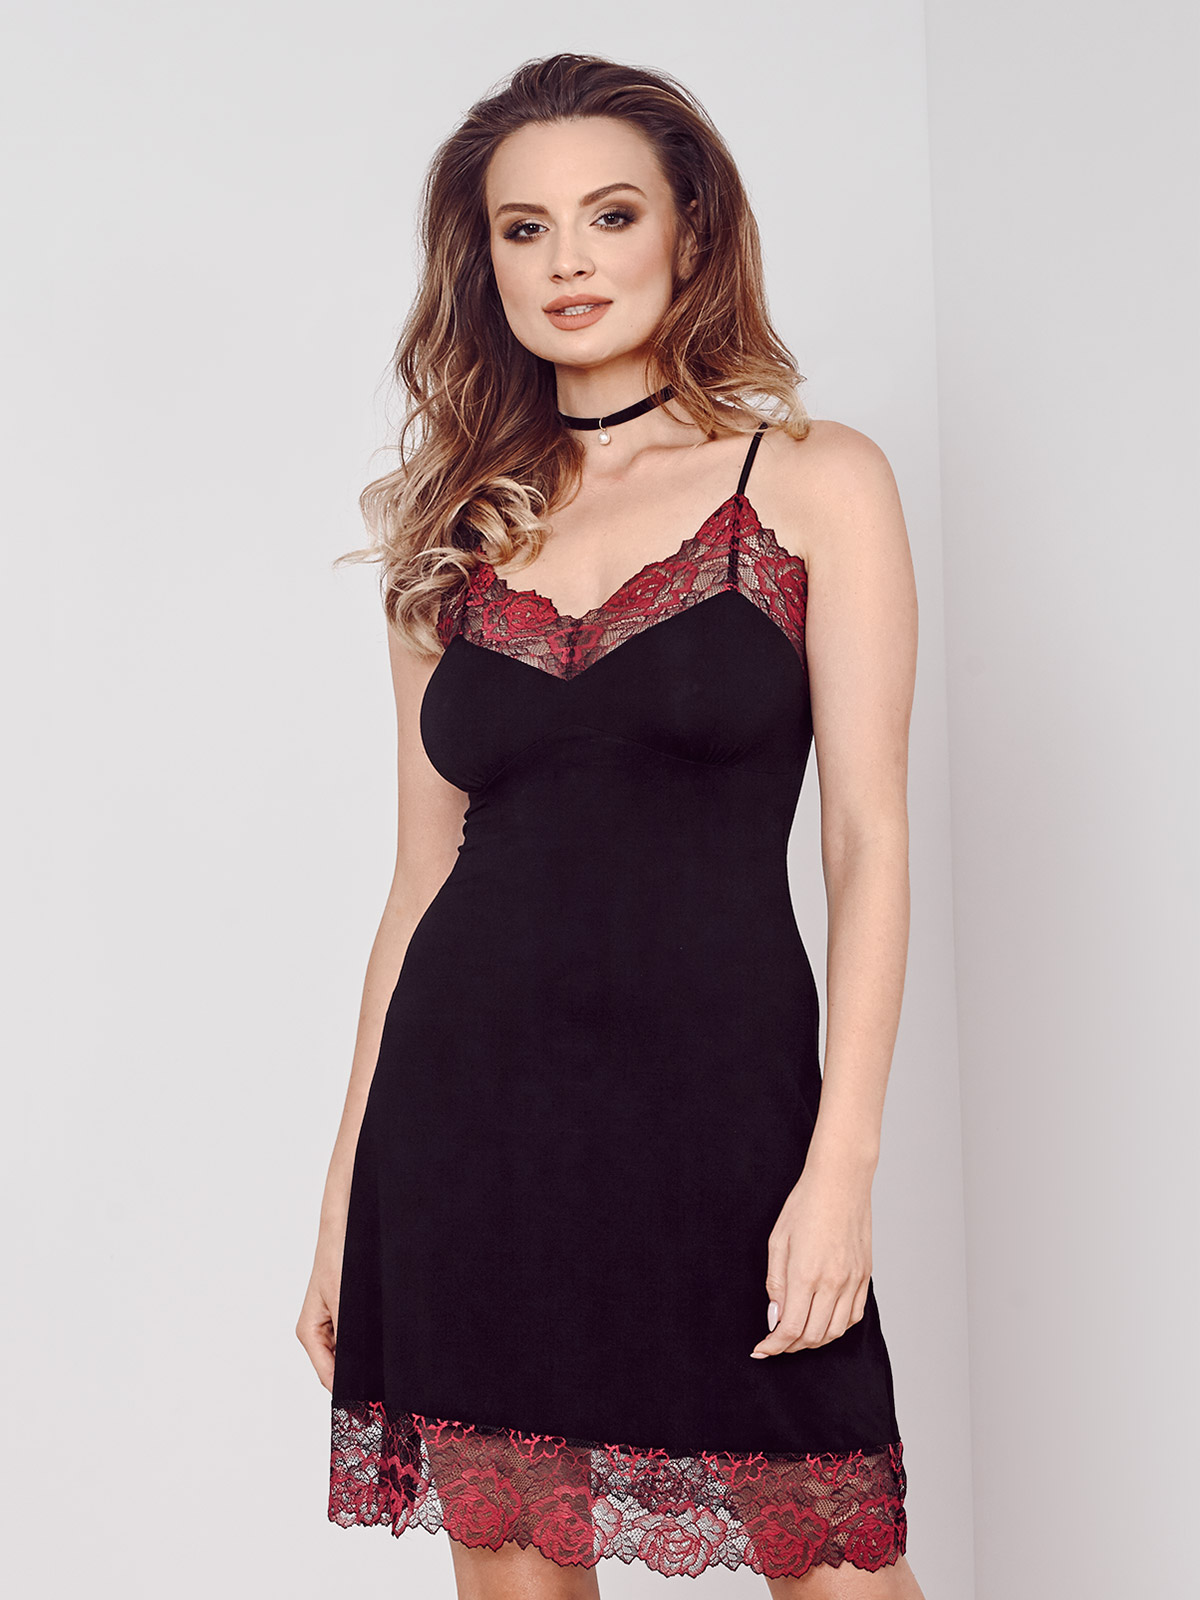 IC 012 Chemise<br />02 Black, 07 Ruby, 28 Cappuccino